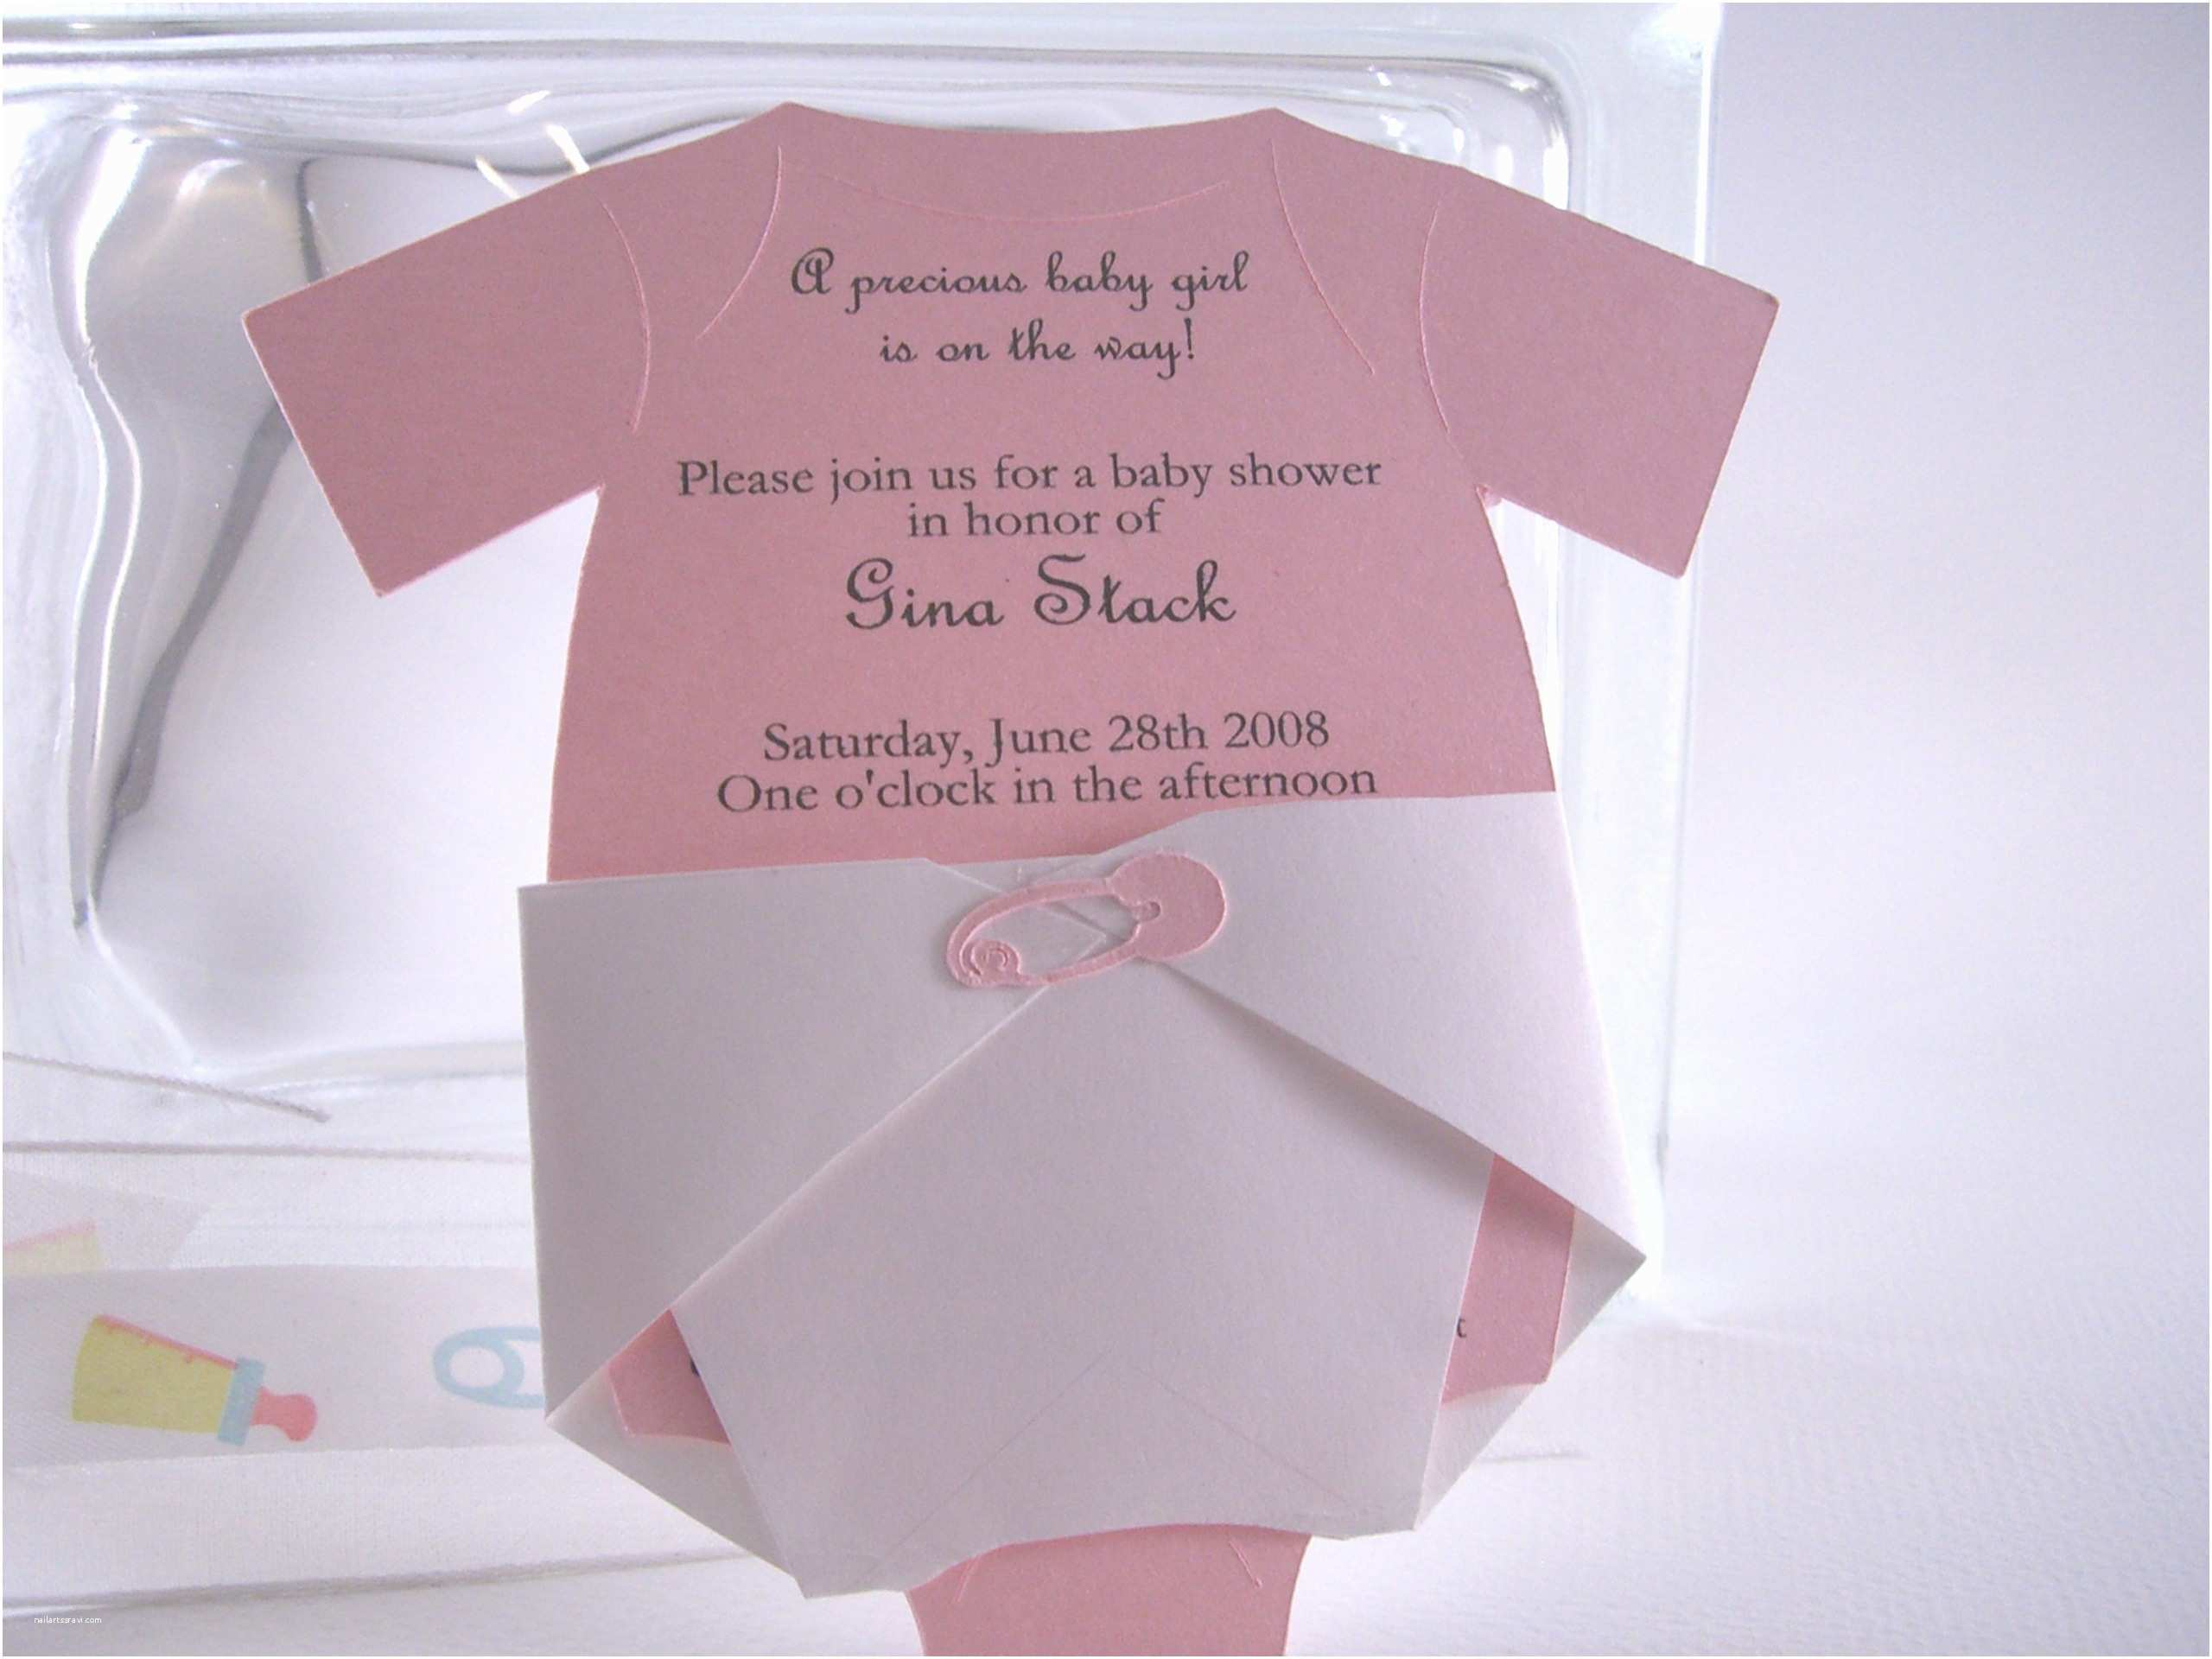 Baby Shower Diaper Invitations Diaper Invites for Baby Shower